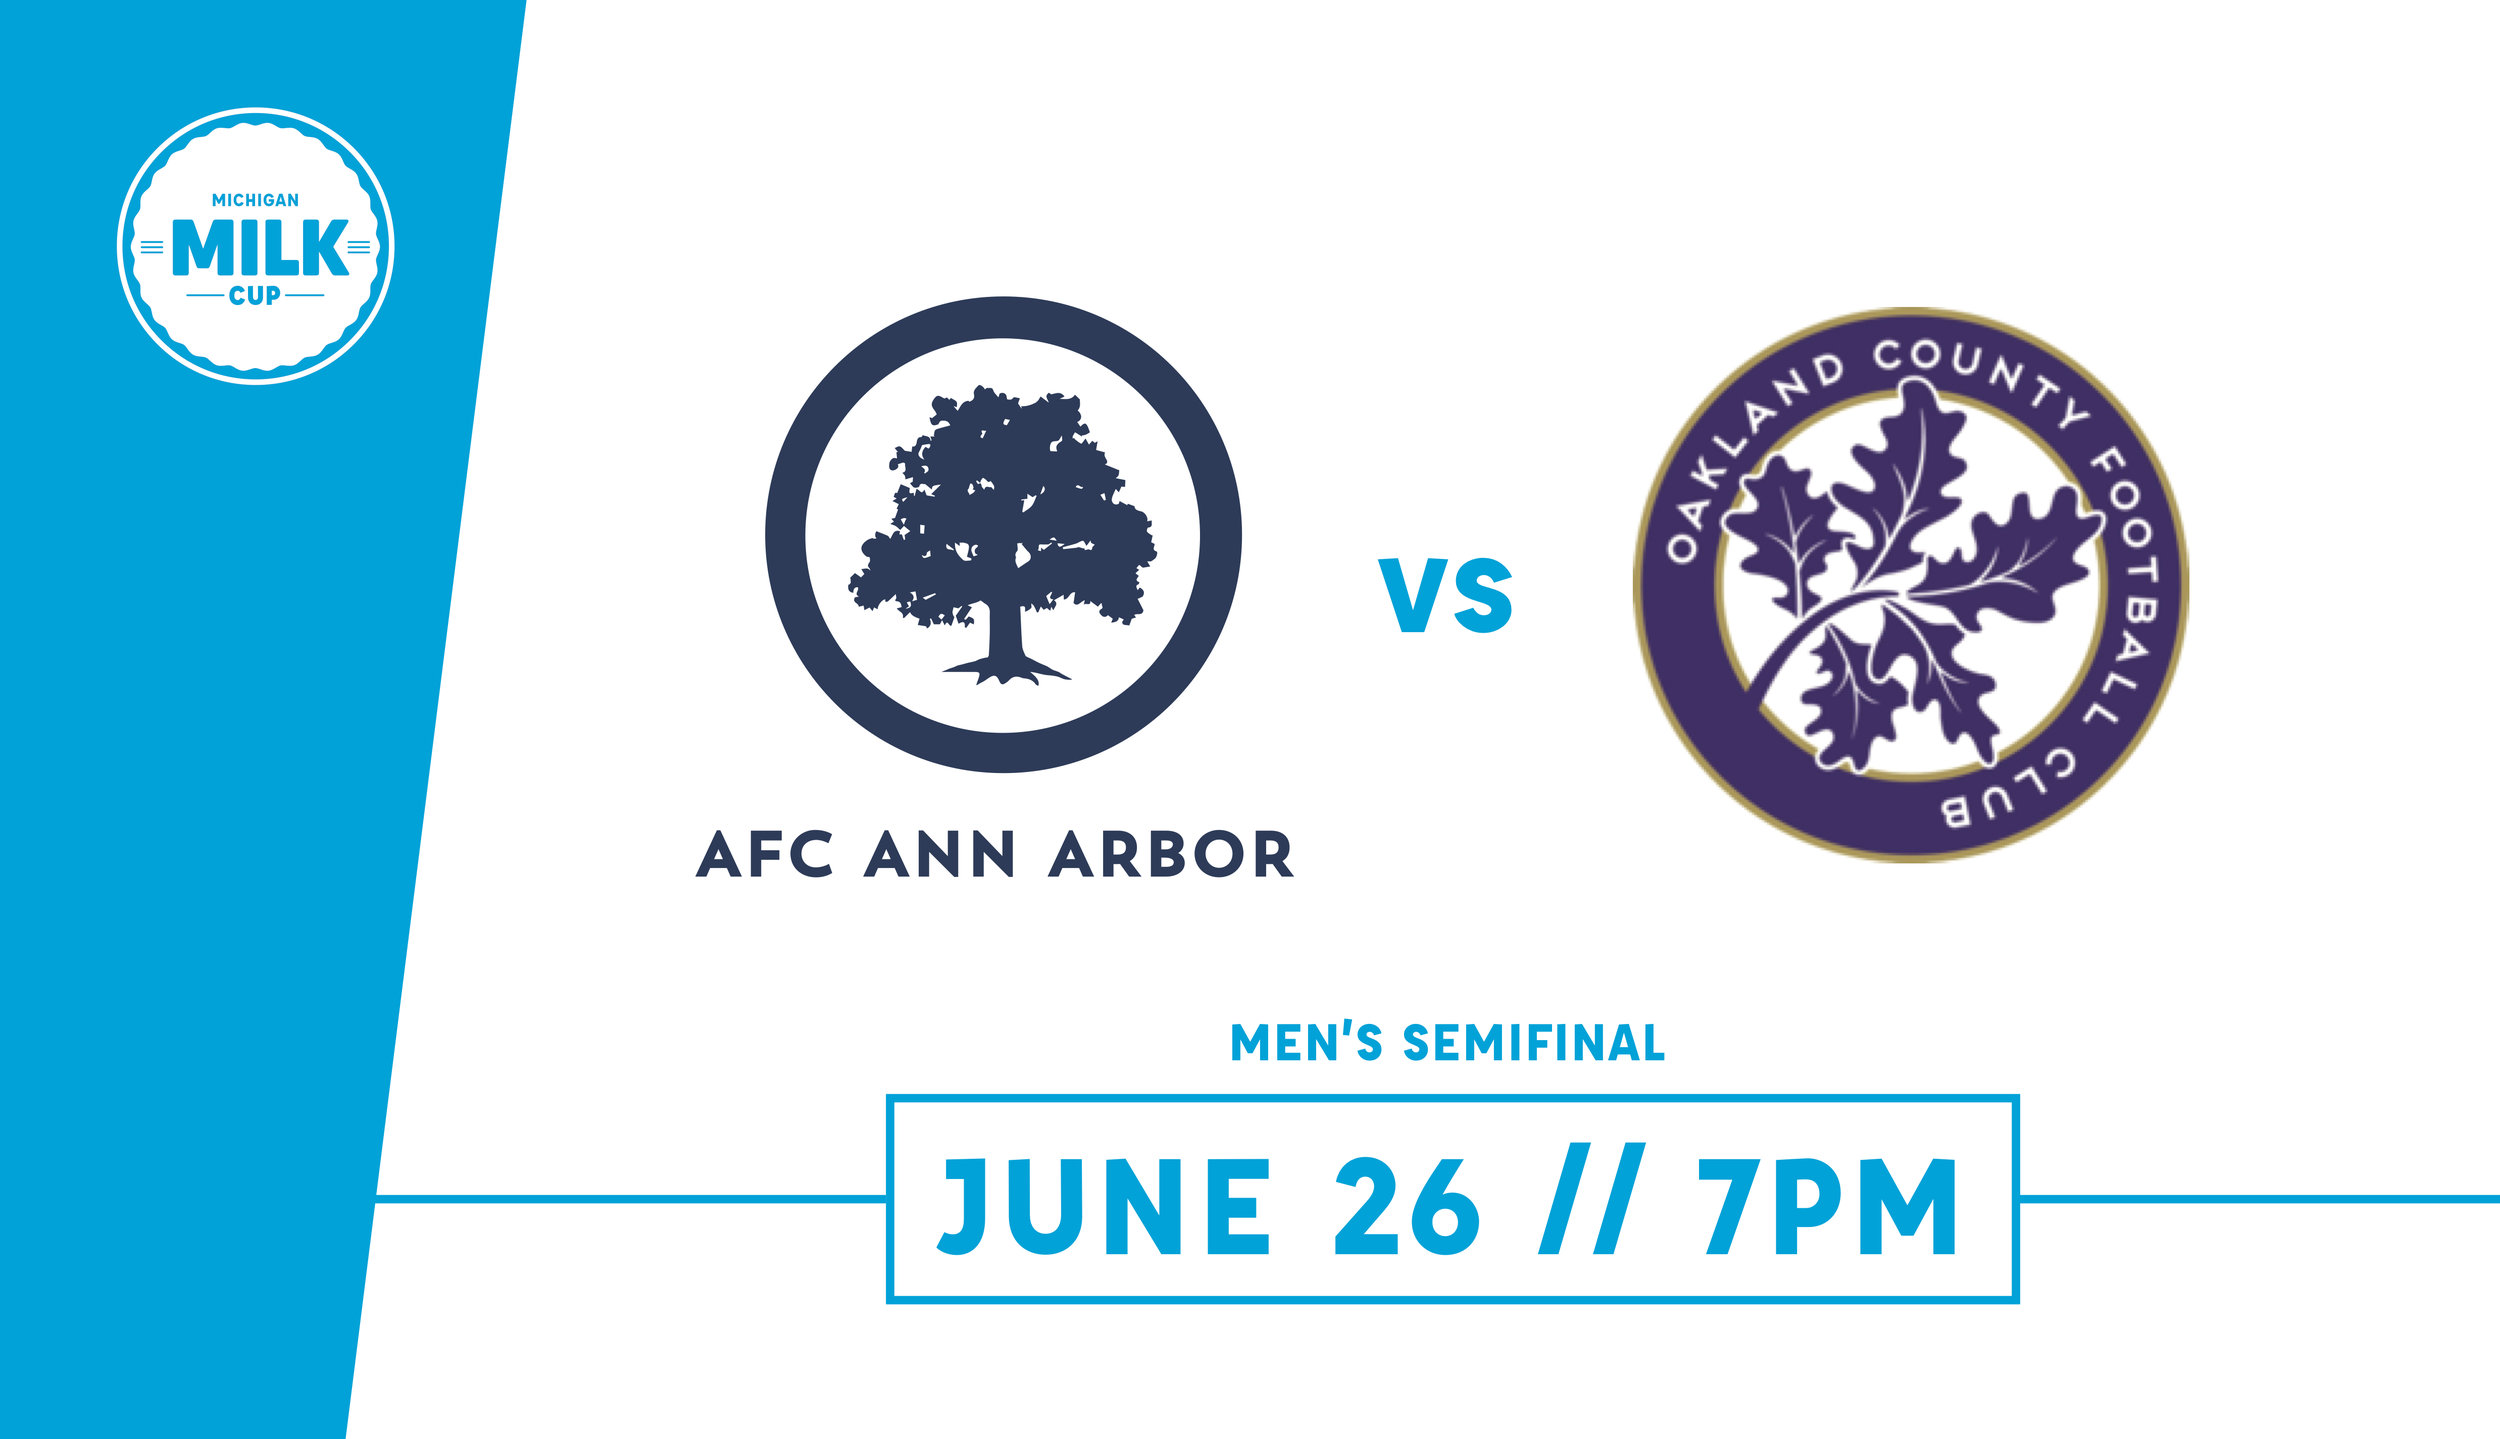 Hosted by AFC Ann Arbor at Concordia University